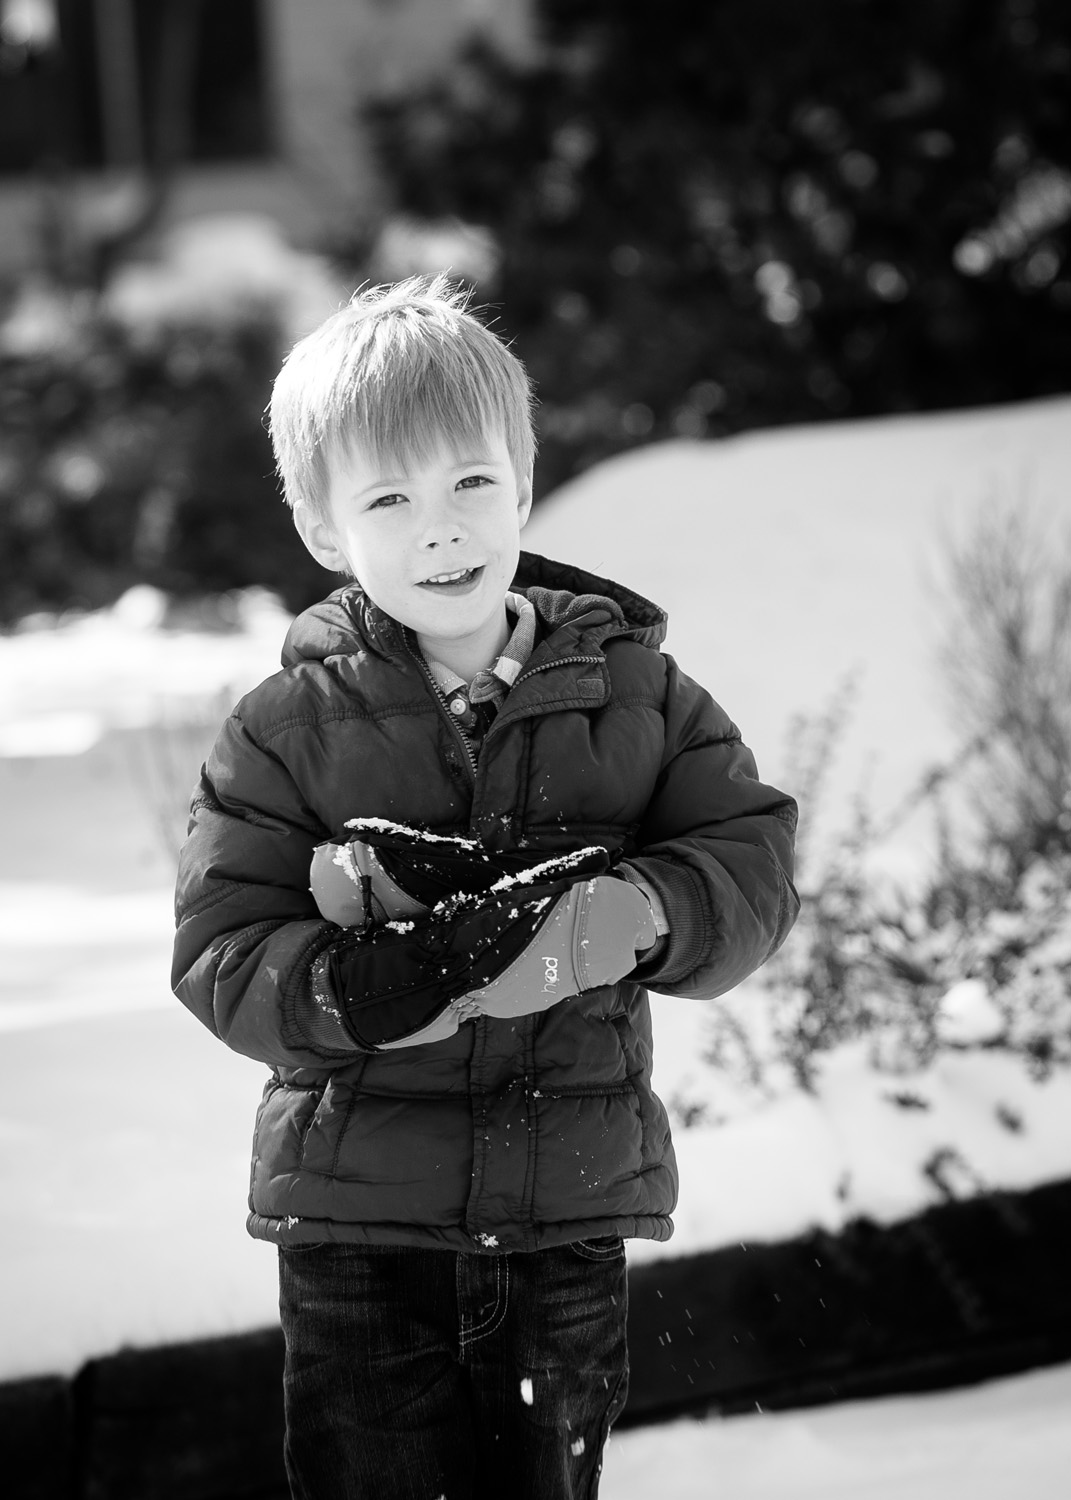 A young boy plays in the snow during his outdoor family Christmas photo session at The Gardens of Castle Rock